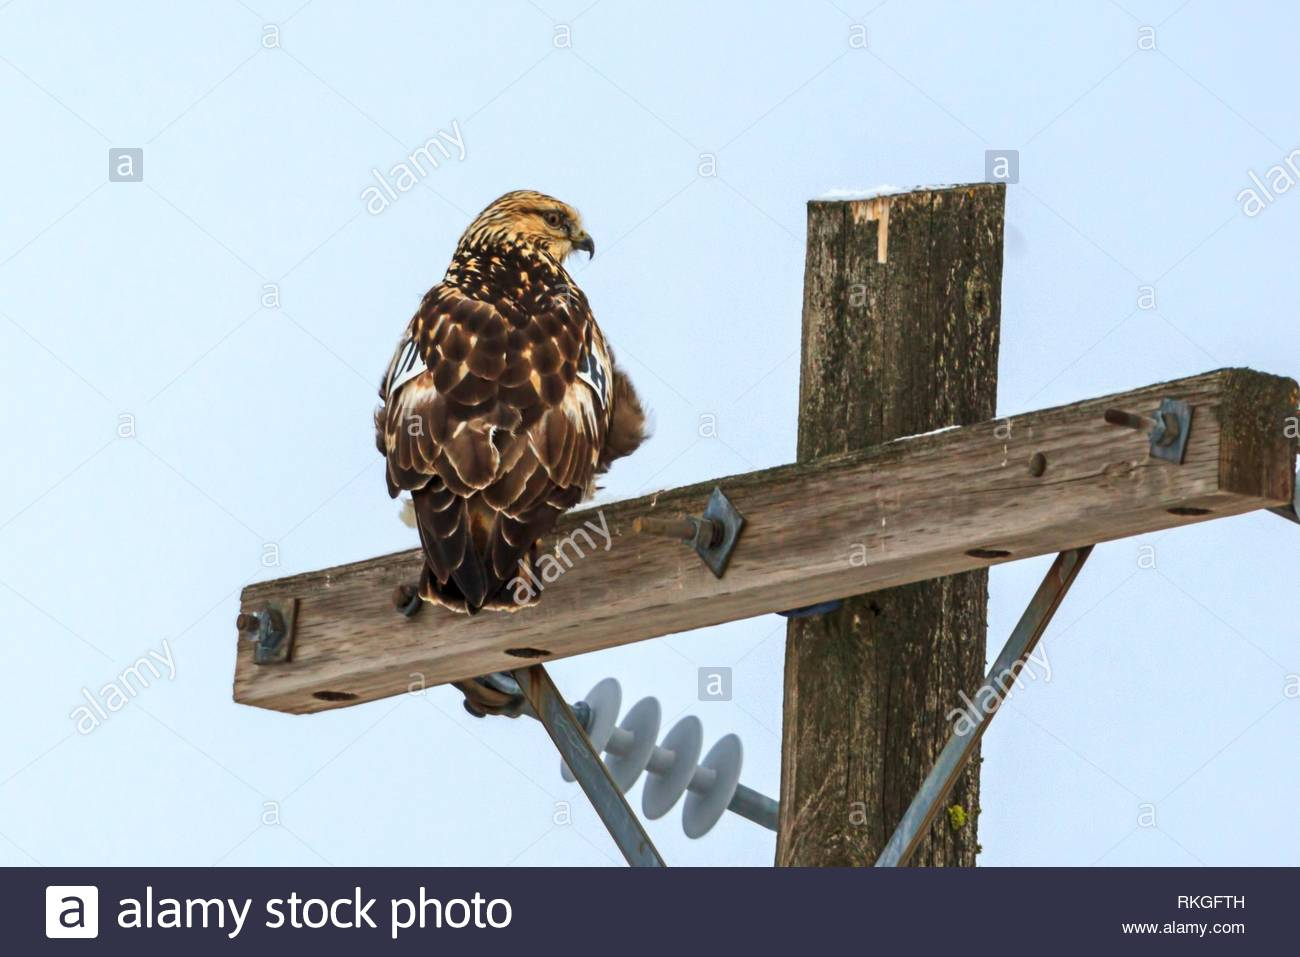 A beautiful hawk is perched on a wooden pole near Davenport, Washington. - Stock Image